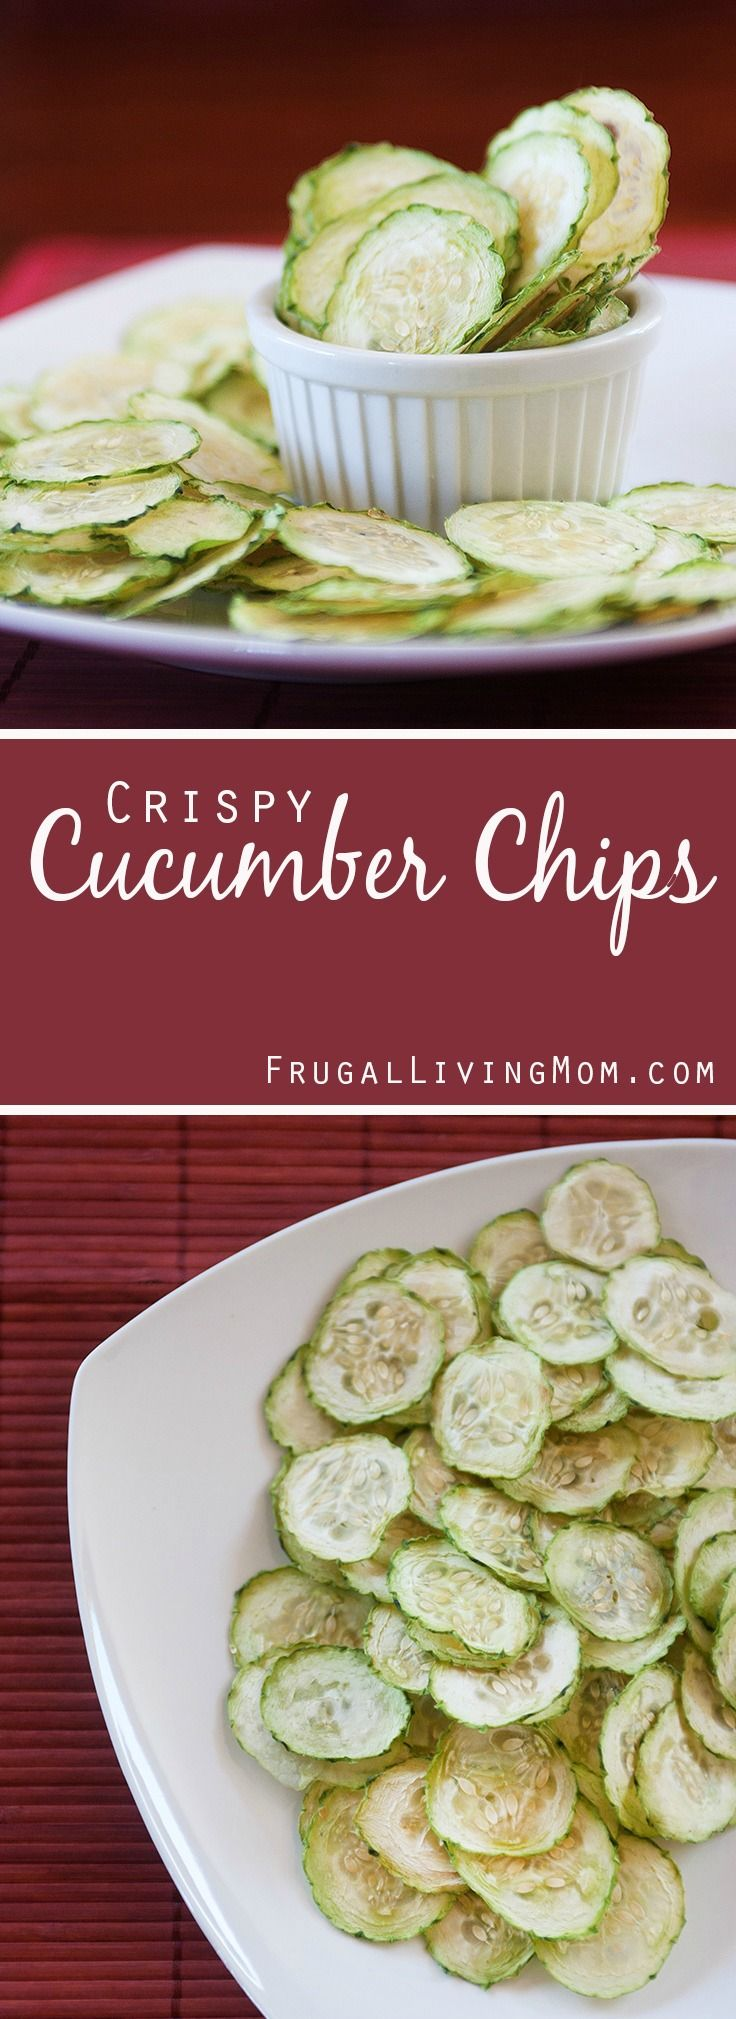 Crispy Cucumber Chips!! Yum, these crispy little chips would be great with ranch dressing (or just plain!)